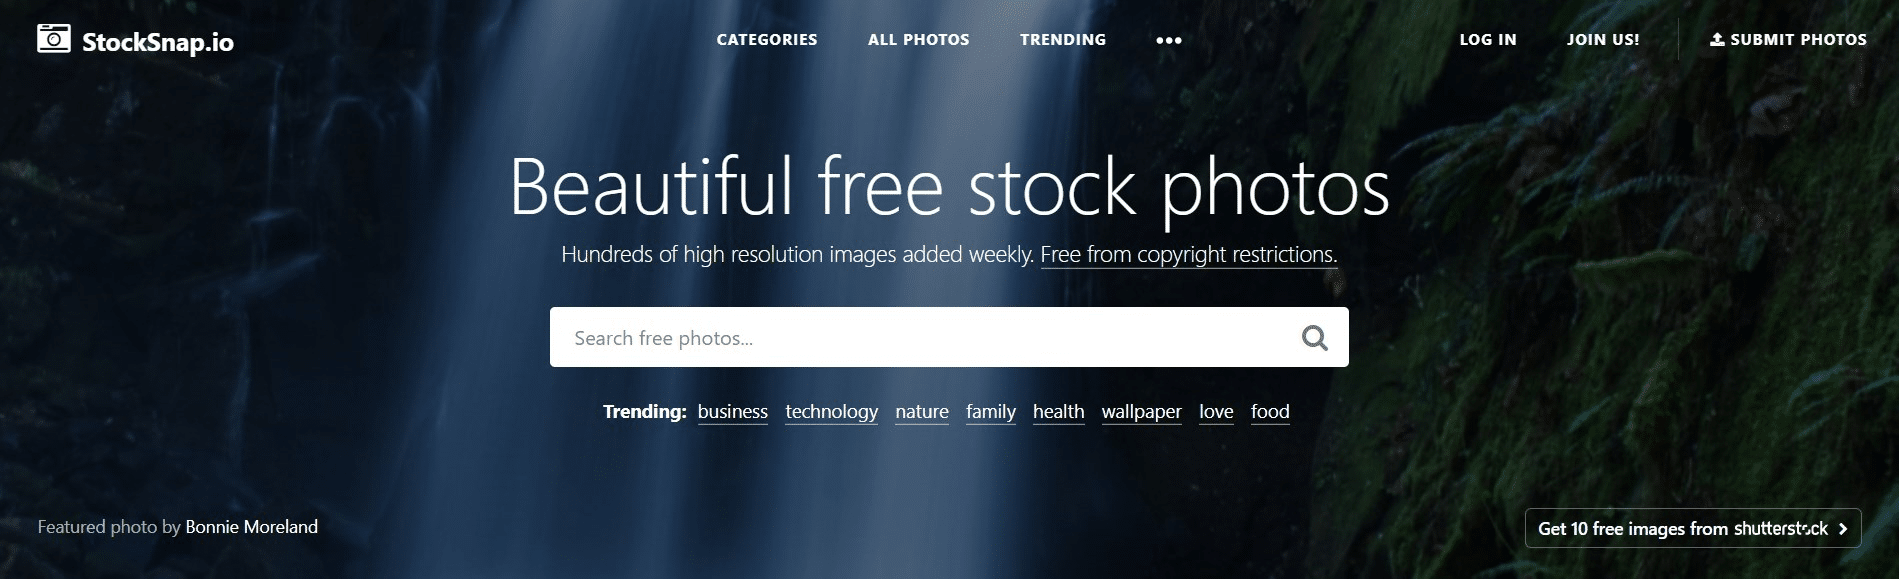 Stocksnap.io free images for website.